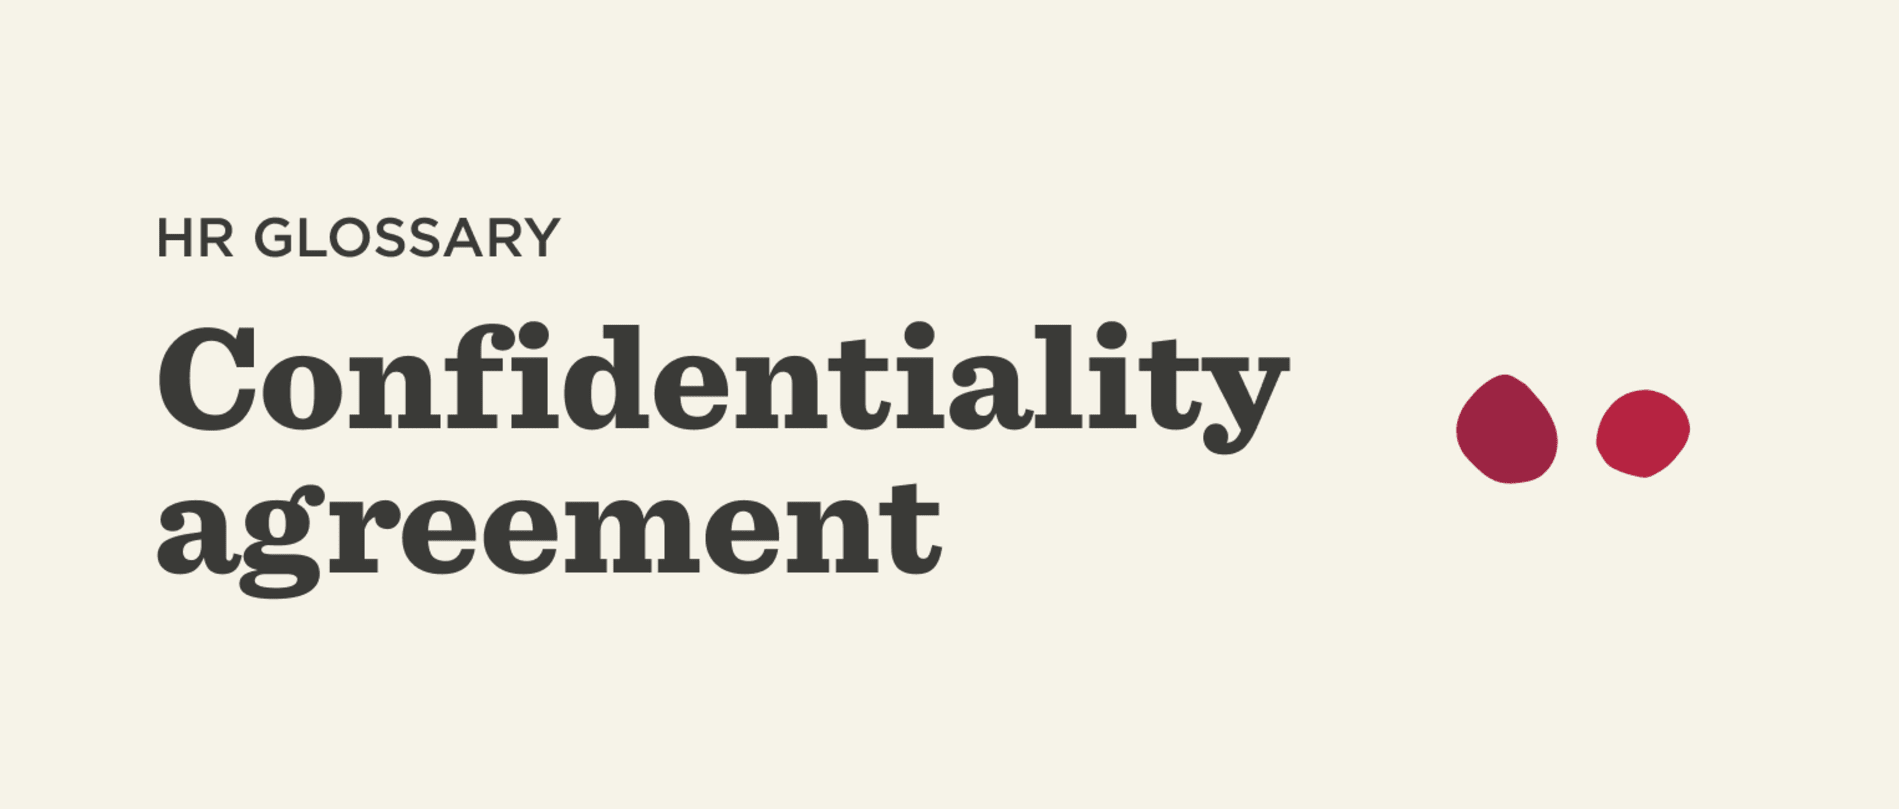 Confidentiality-Agreement-Glossary-banner